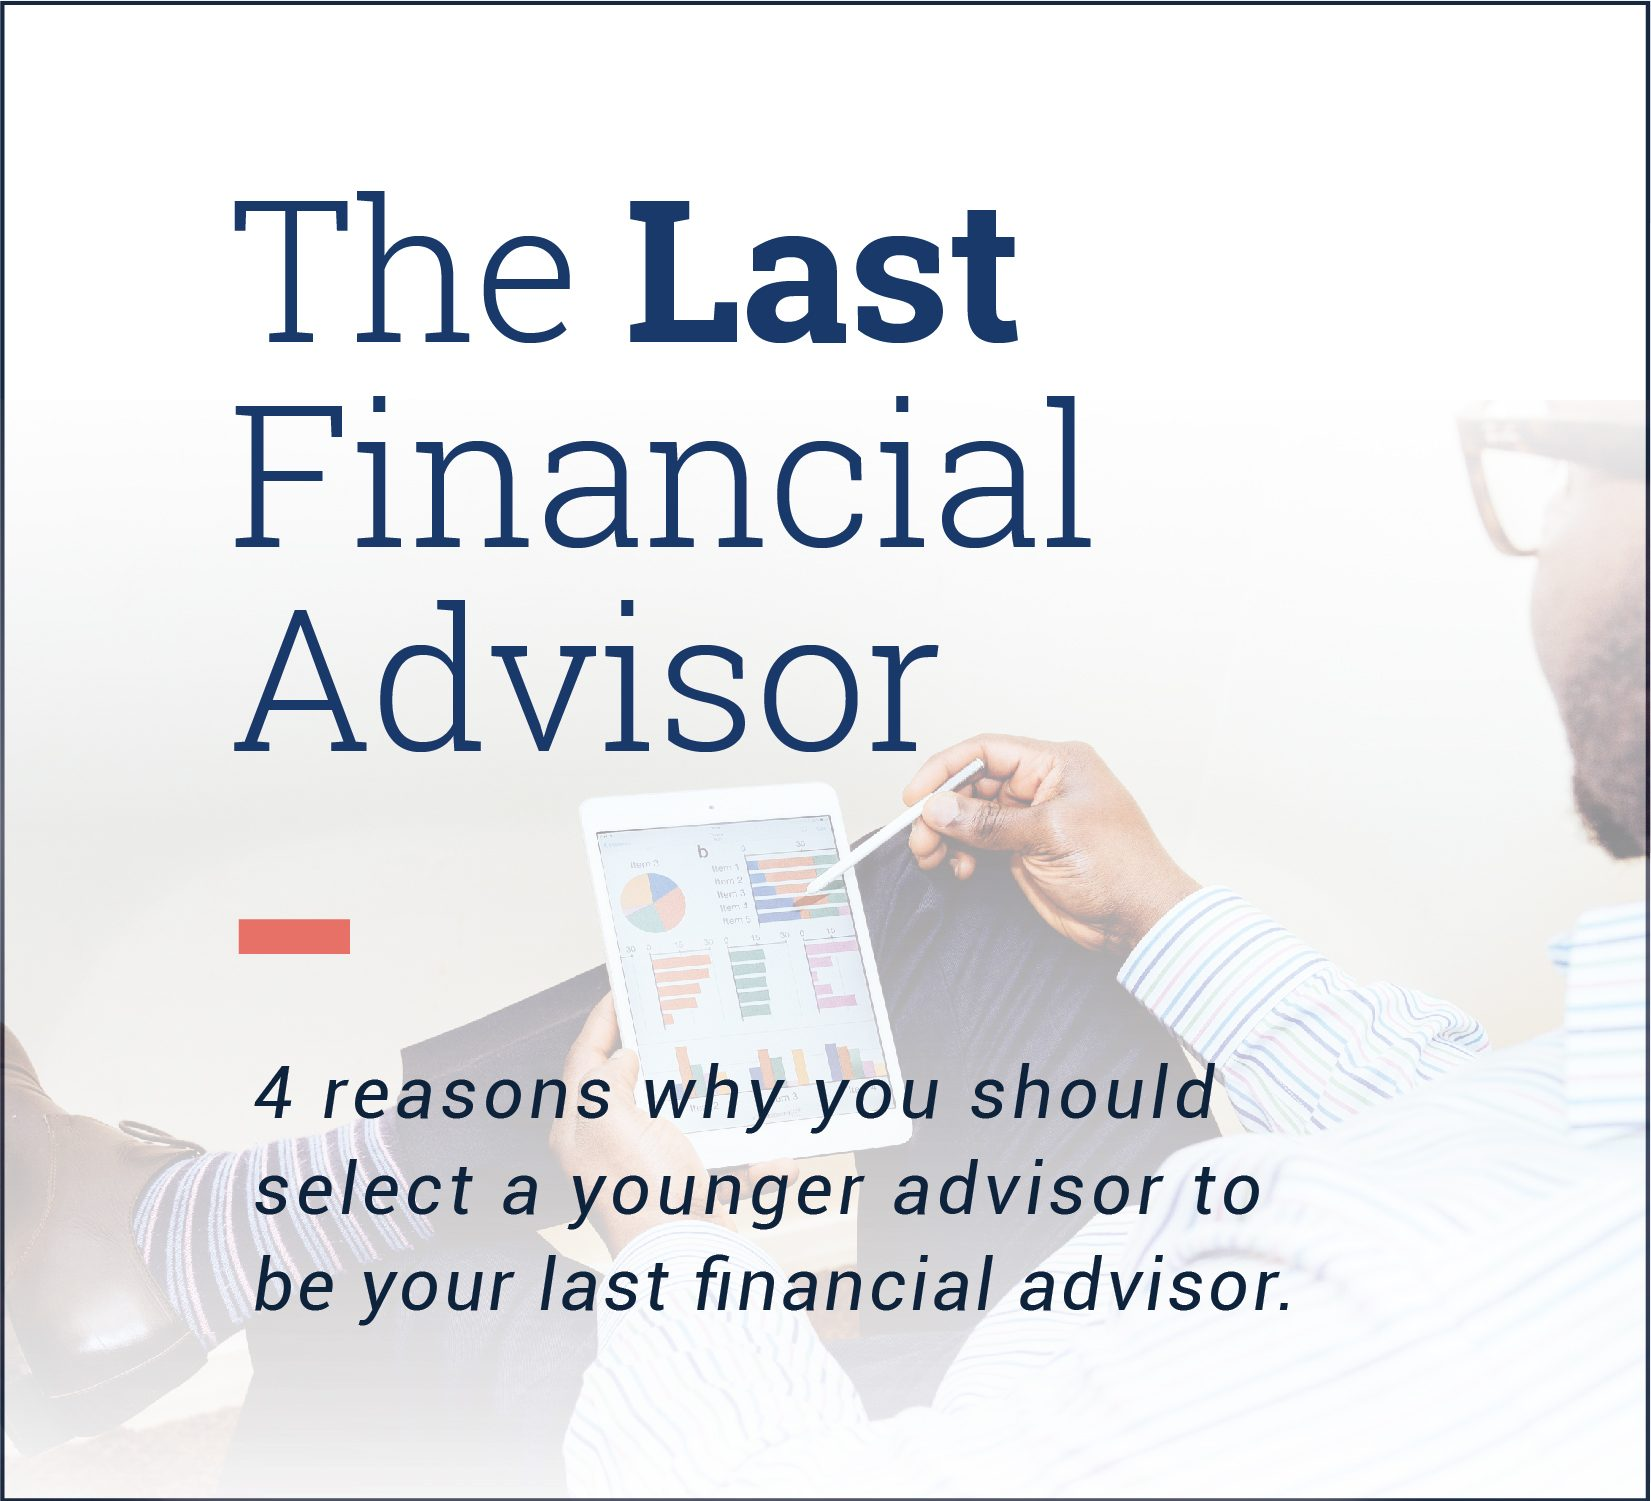 the last financial advisor